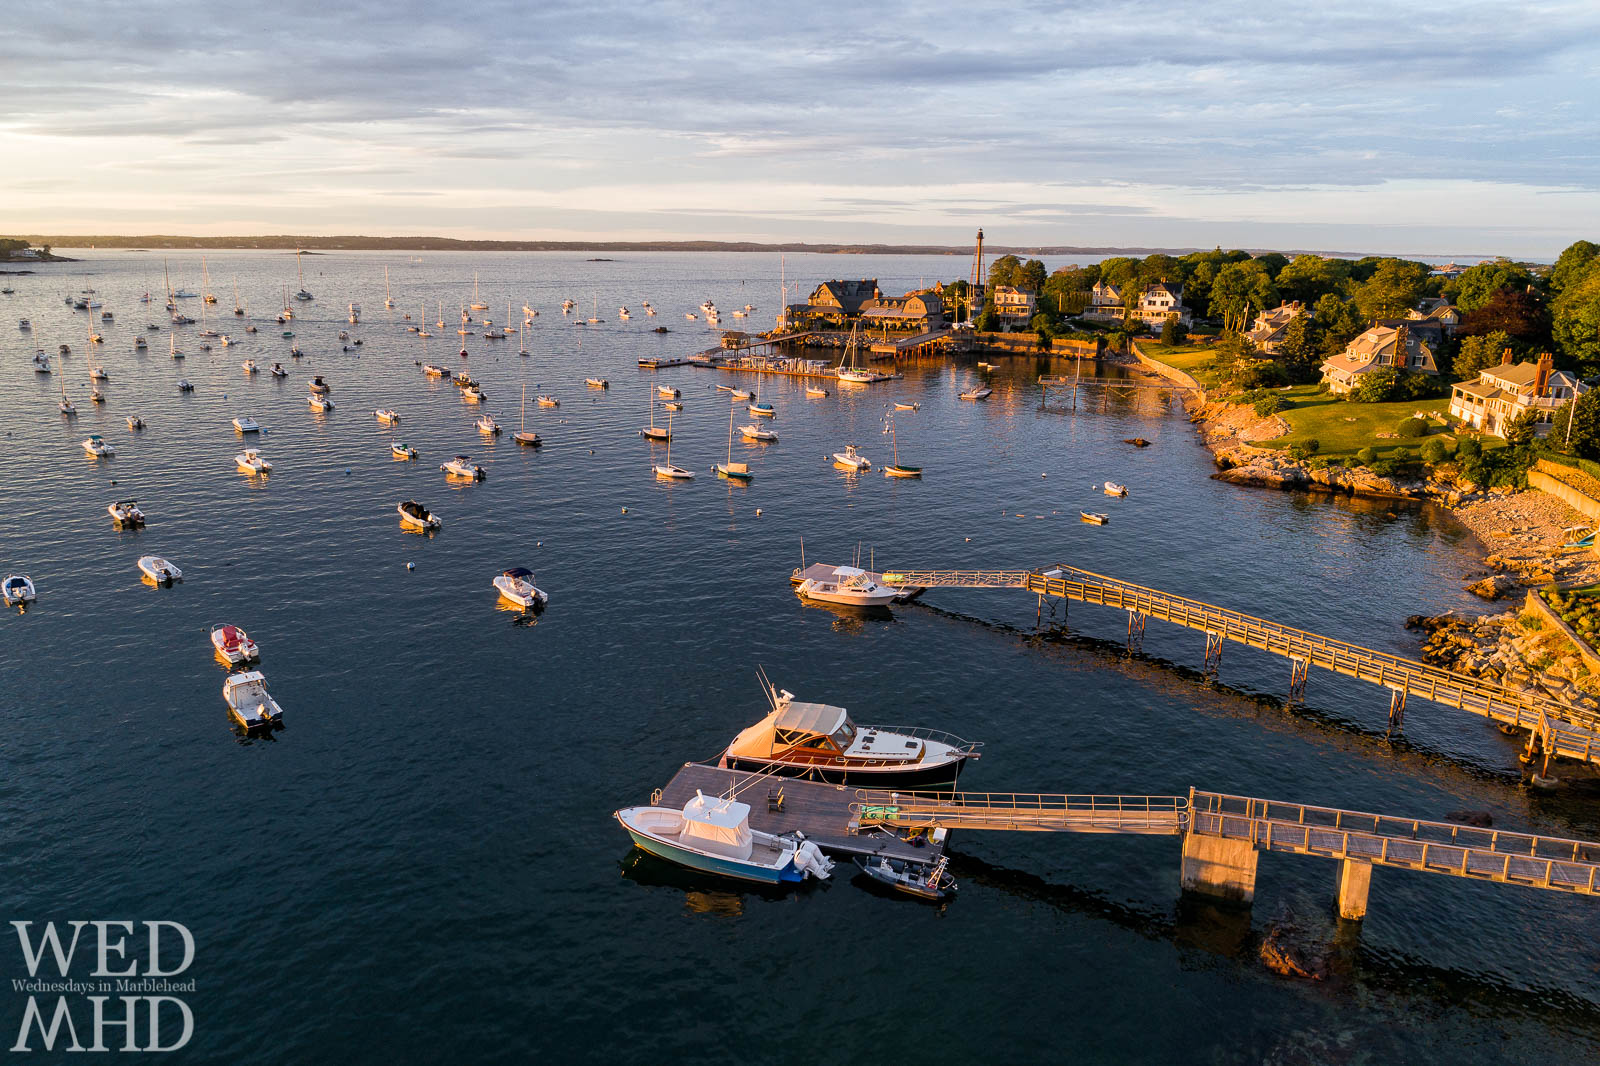 Golden hour creates piers of gold in Marblehead Harbor as the houses, boats and piers are bathed in golden light from the setting sun